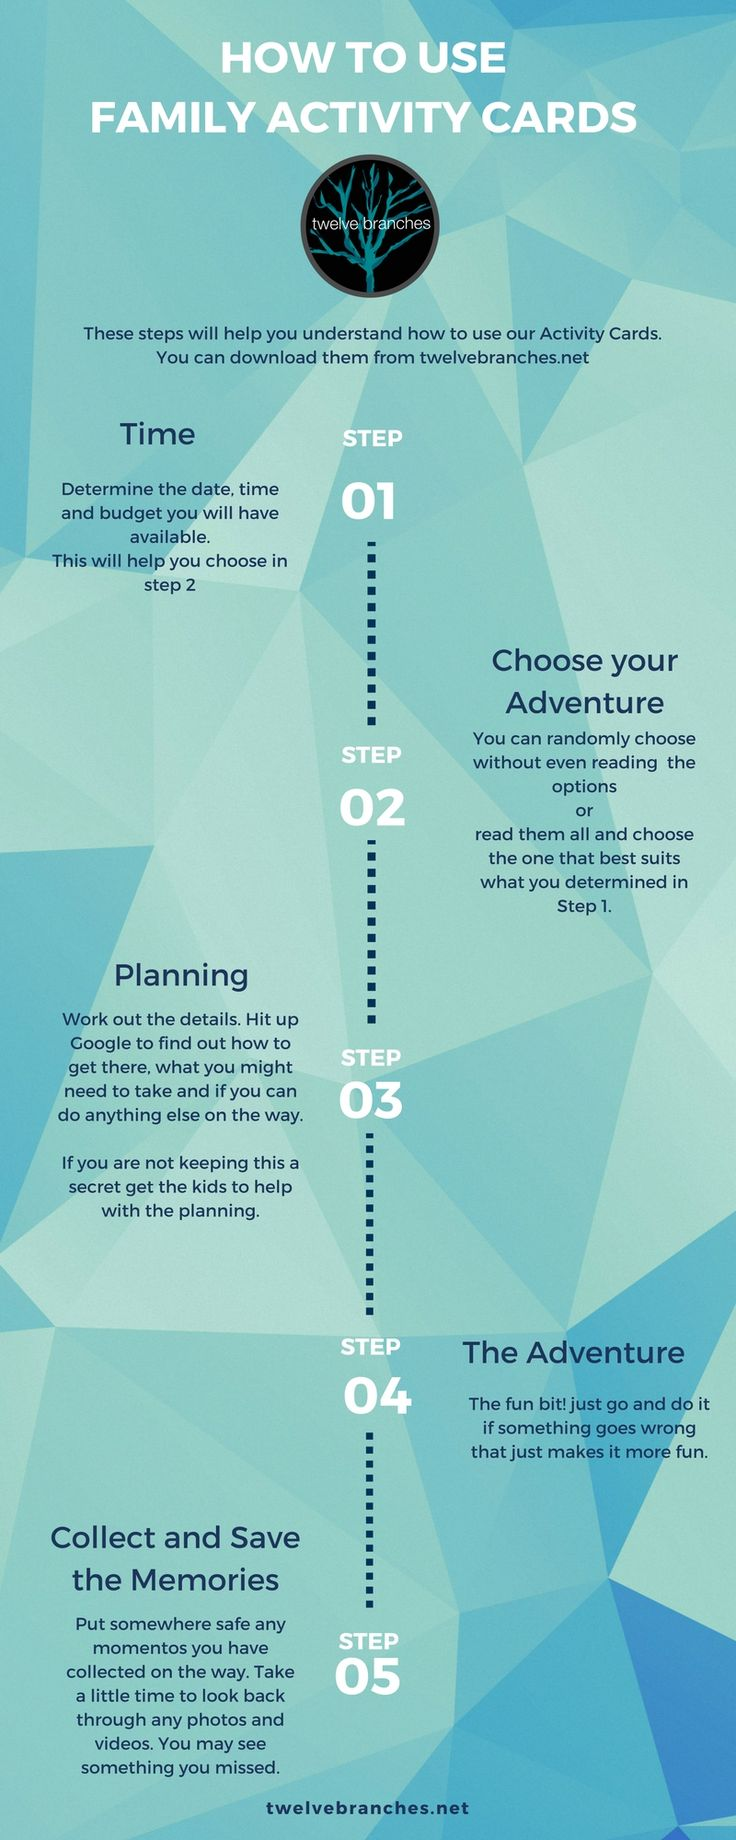 The quick and easy steps to on how to use our Activity Cards to get started today on your Family ...